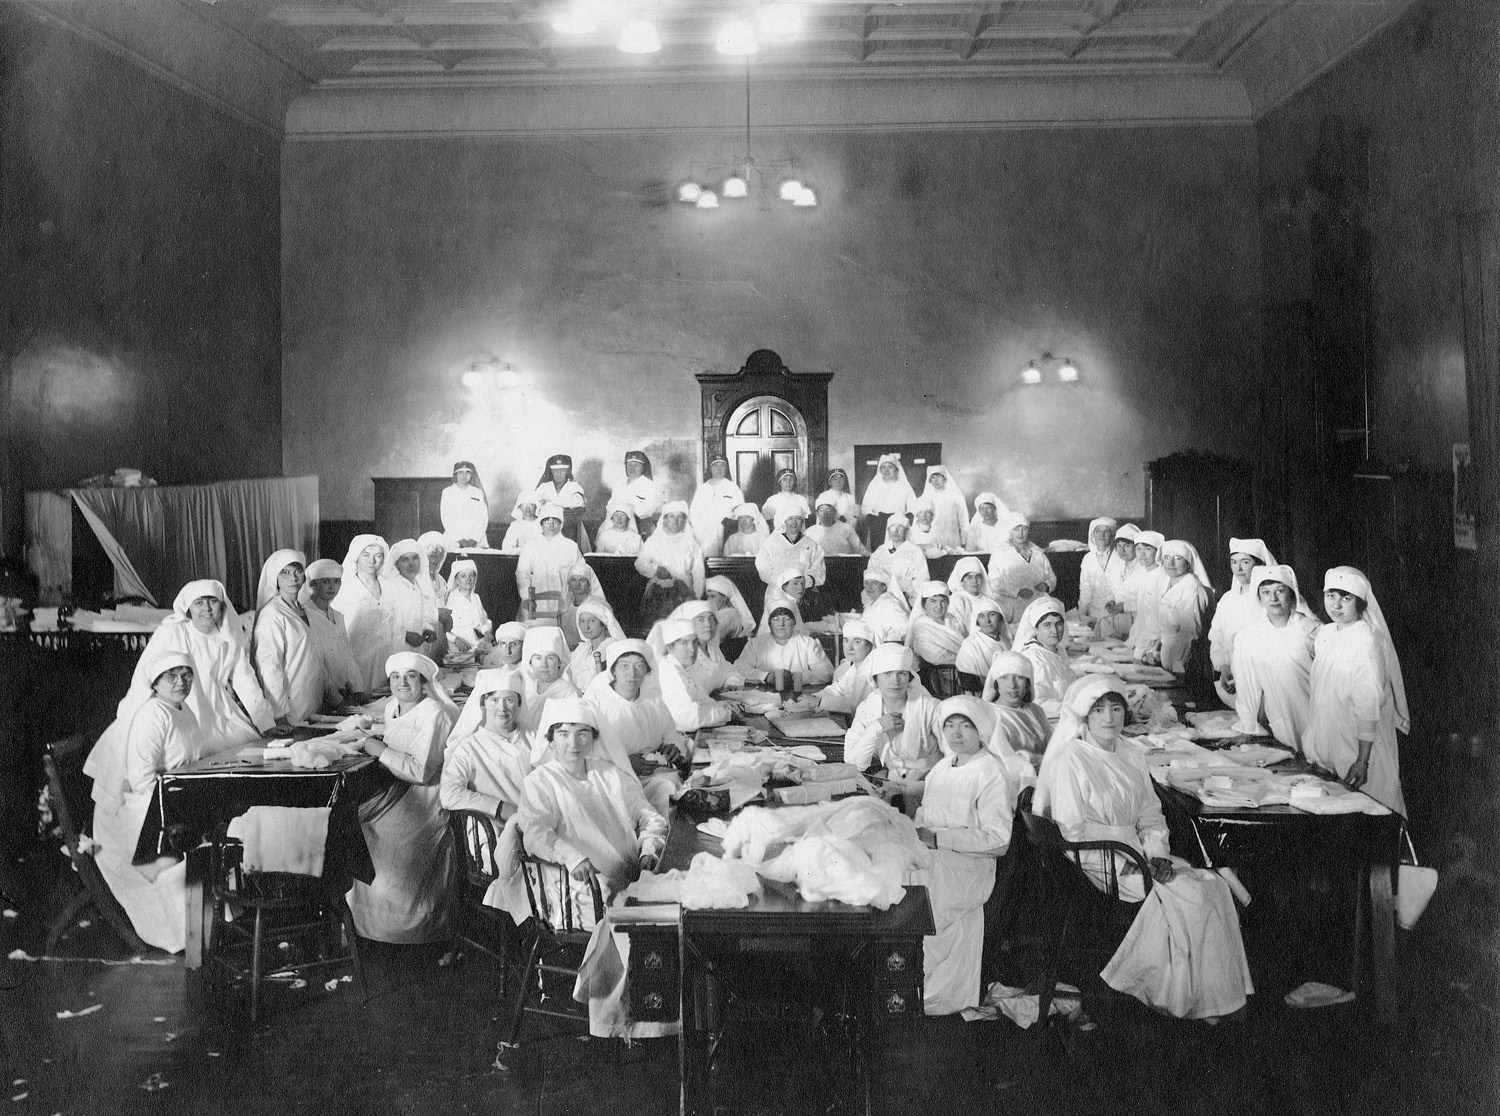 Red Cross Nurses sewing during World War I